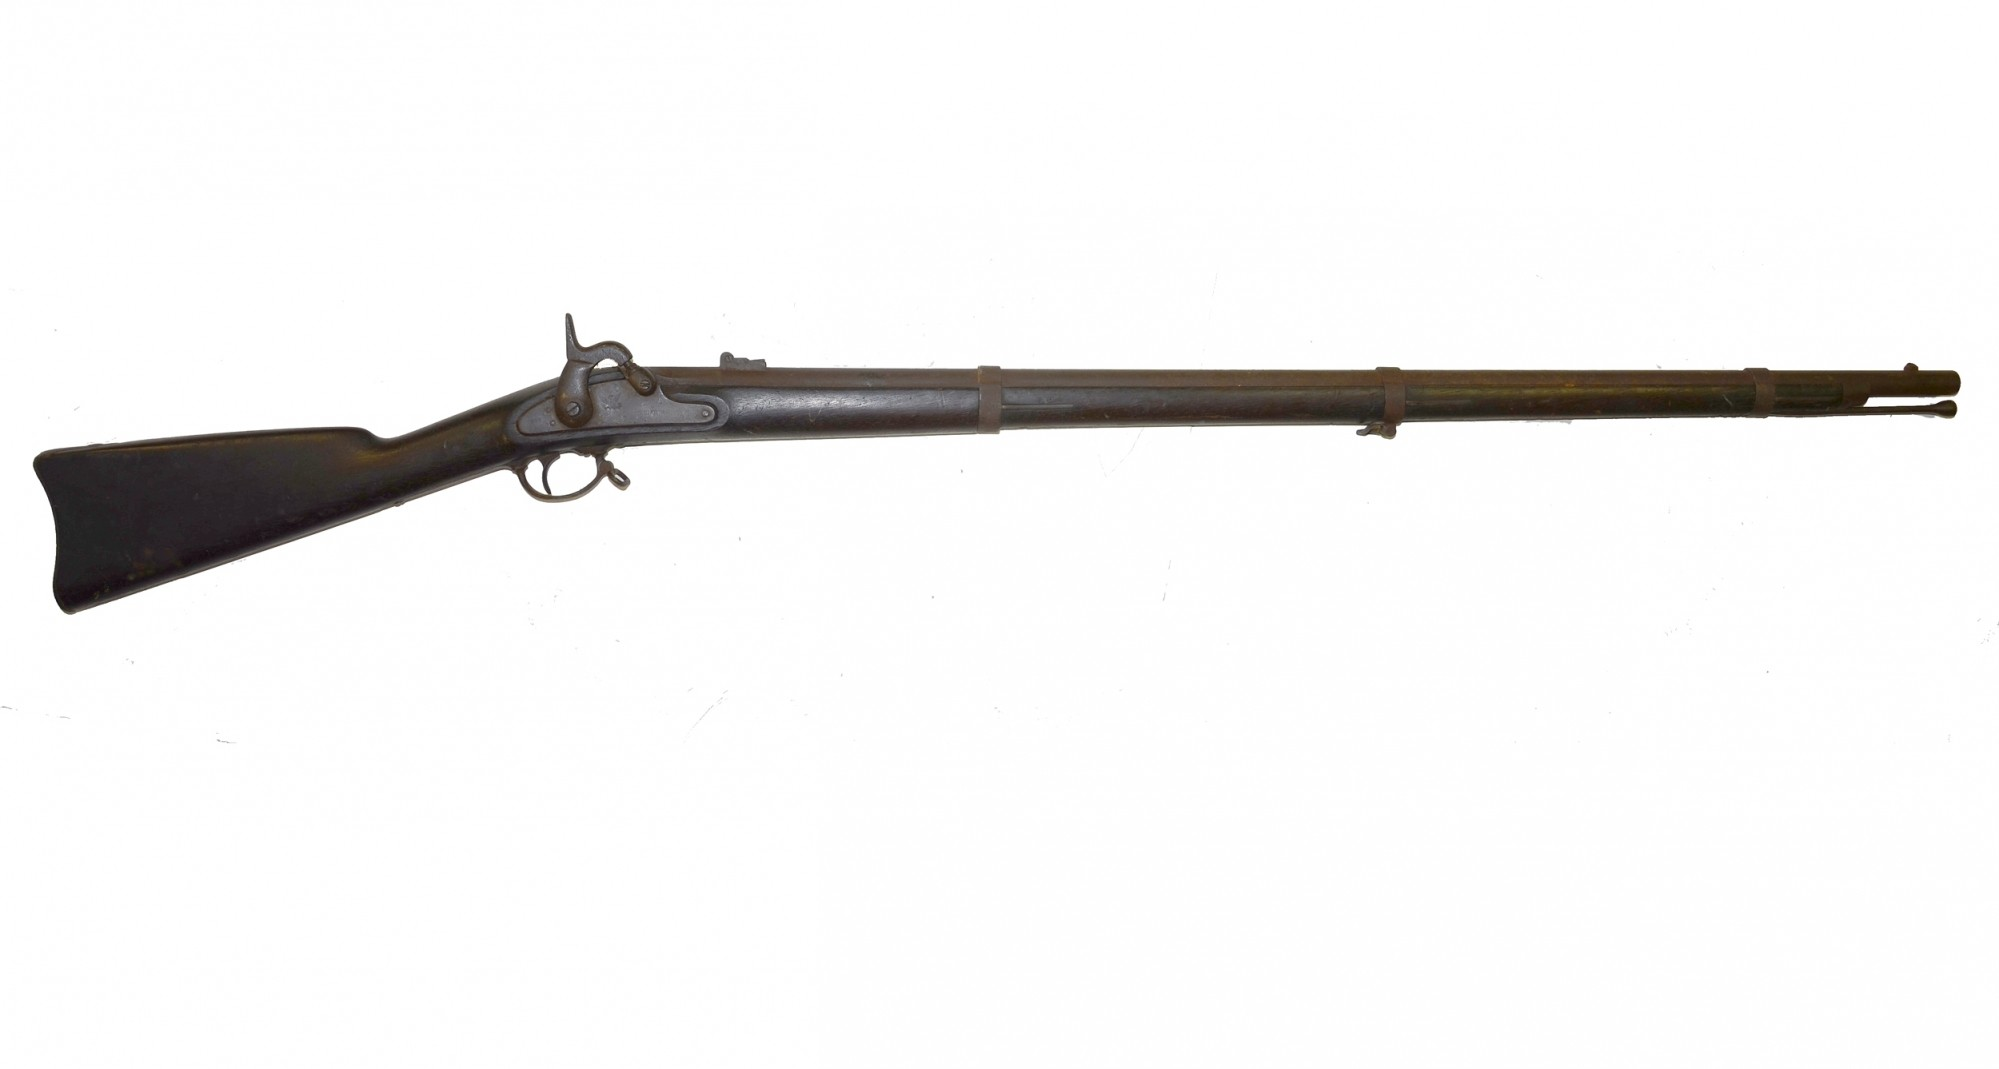 ATTIC CONDITION US MODEL 1861 TRENTON CONTRACT RIFLE MUSKET ISSUED TO NEW JERSEY TROOPS!